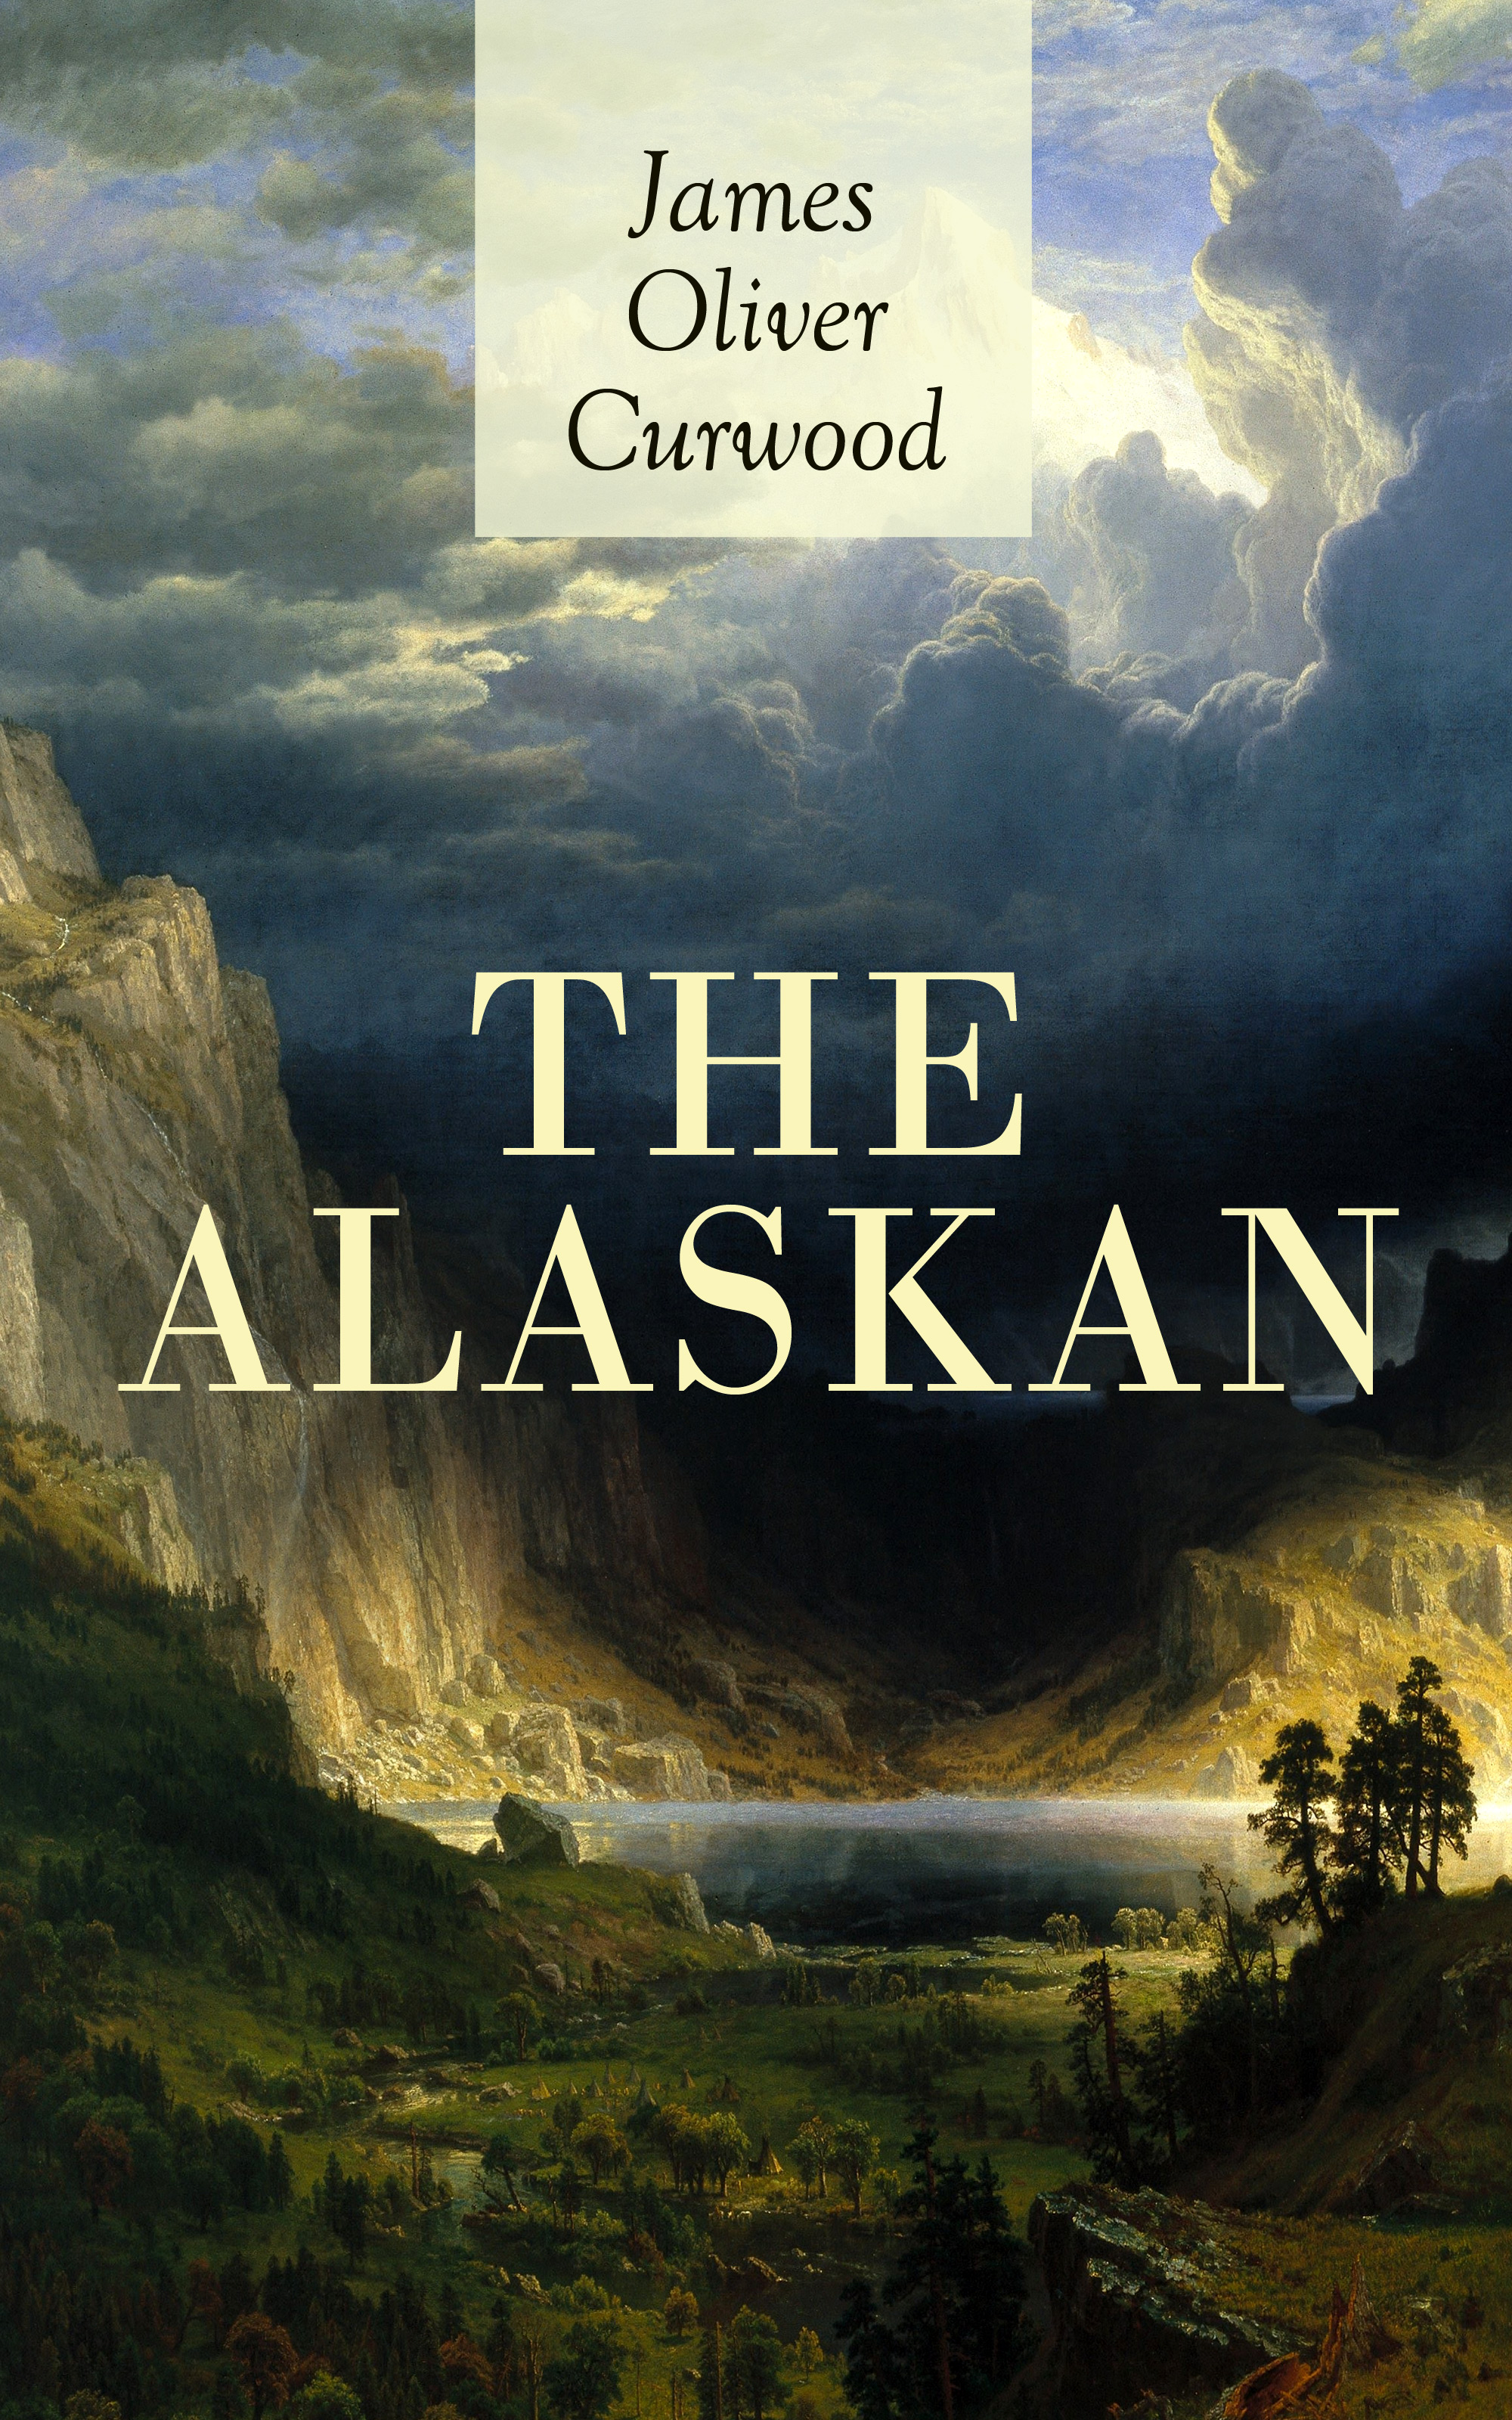 цена на James Oliver Curwood THE ALASKAN